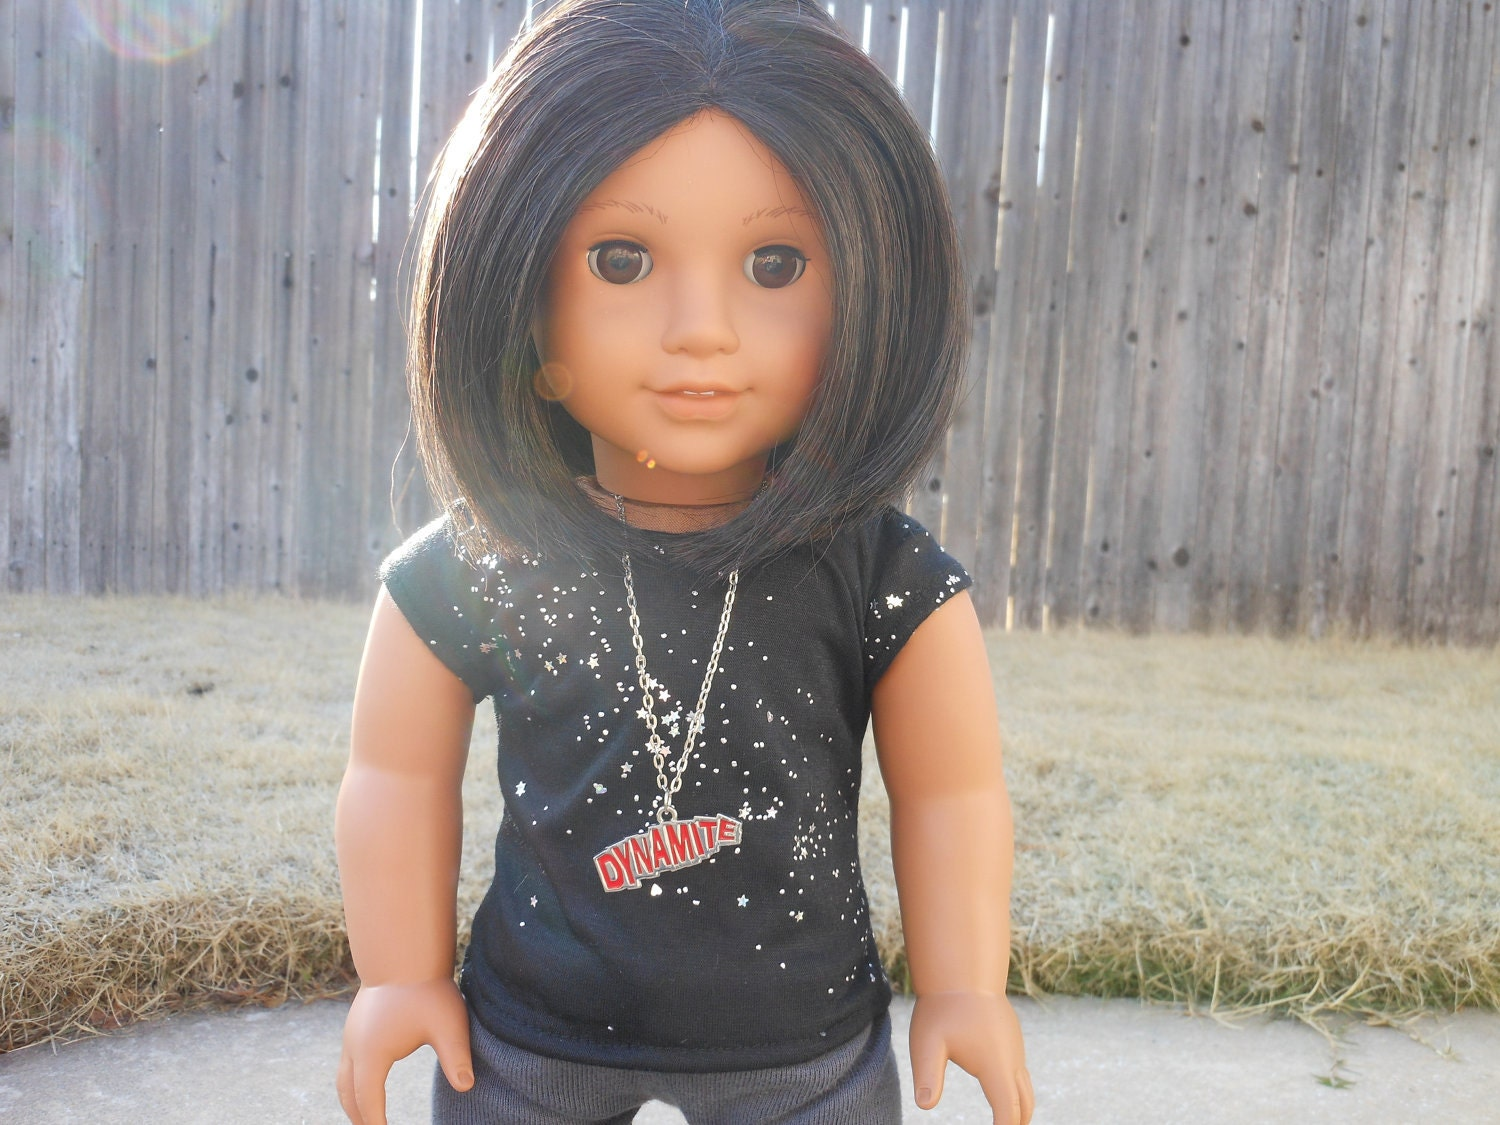 Starry Nights Tee and Dynamite Necklace for American Girl Dolls